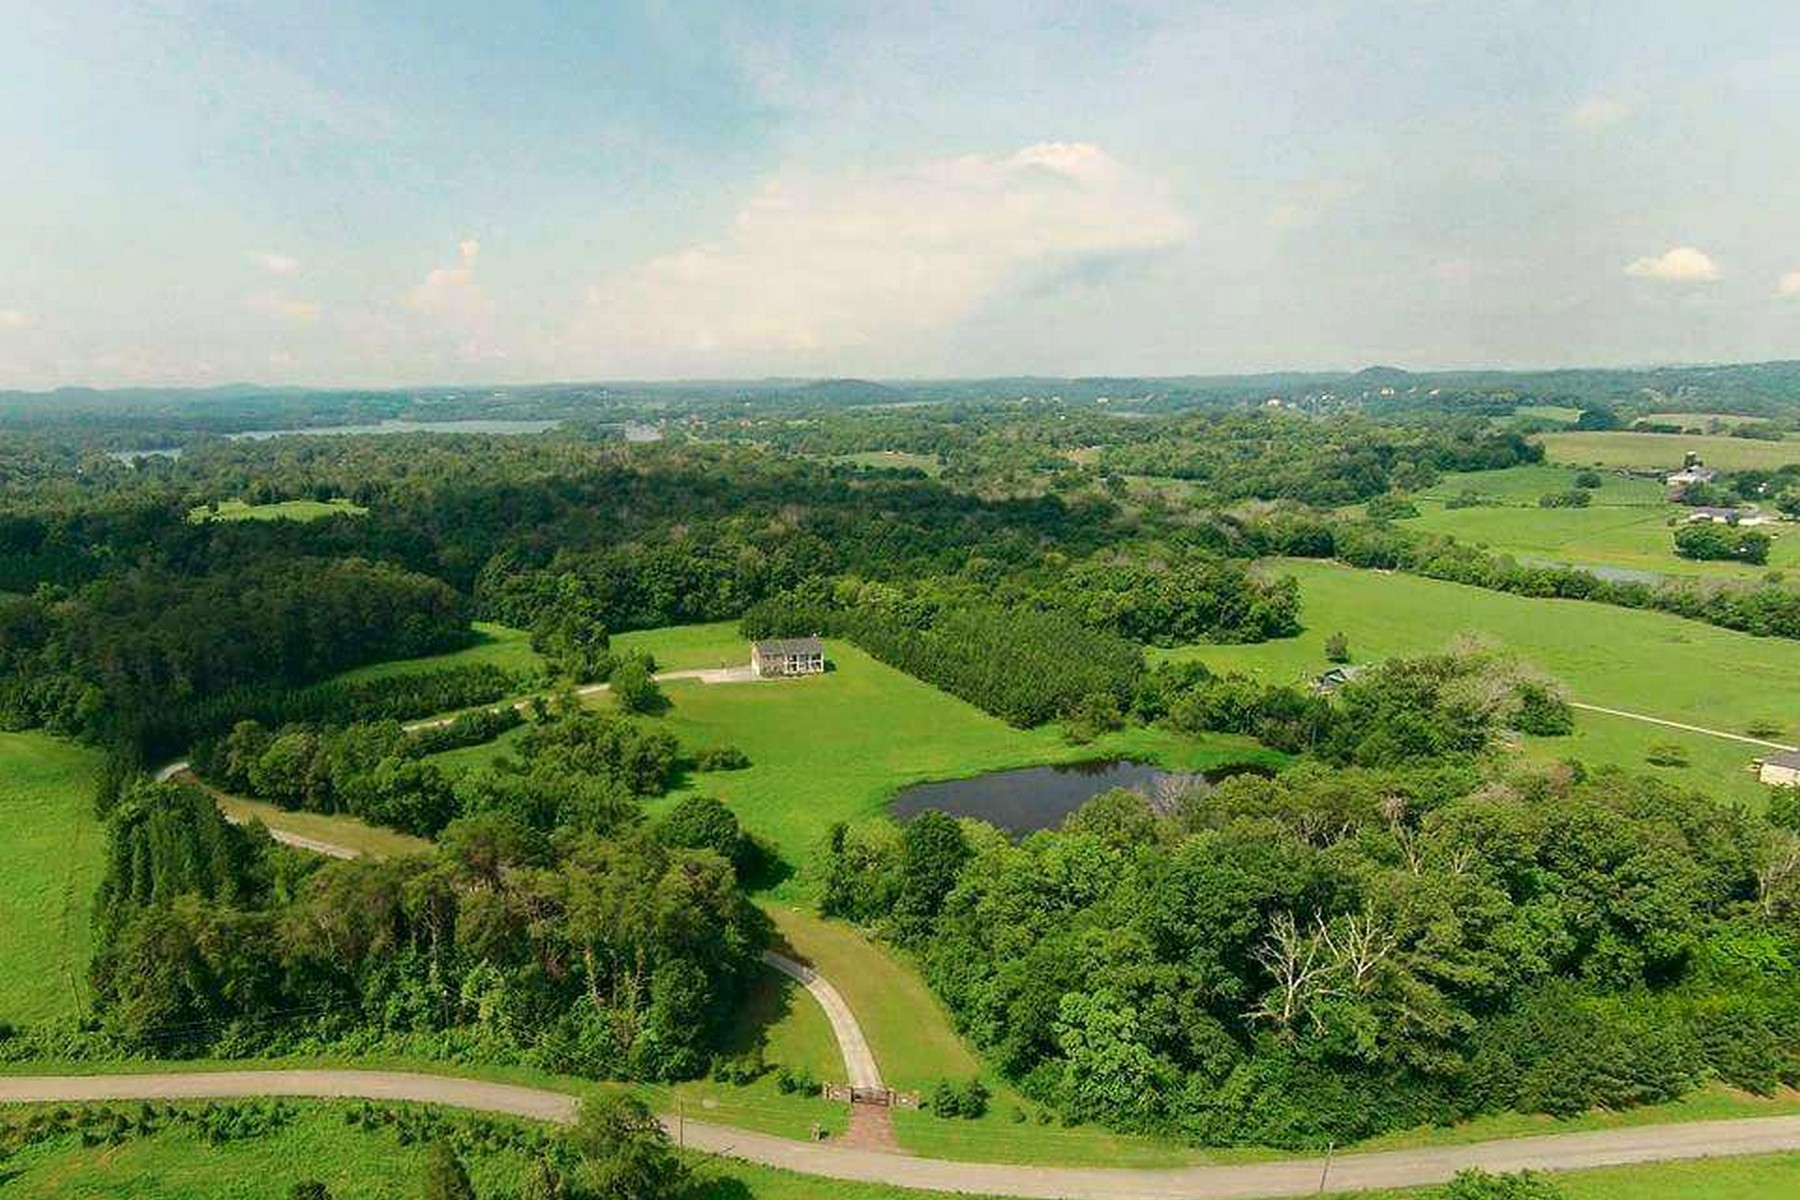 Terreno por un Venta en Gated 32+ Acres For Development 3541 Windy J Farms Louisville, Tennessee 37777 Estados Unidos